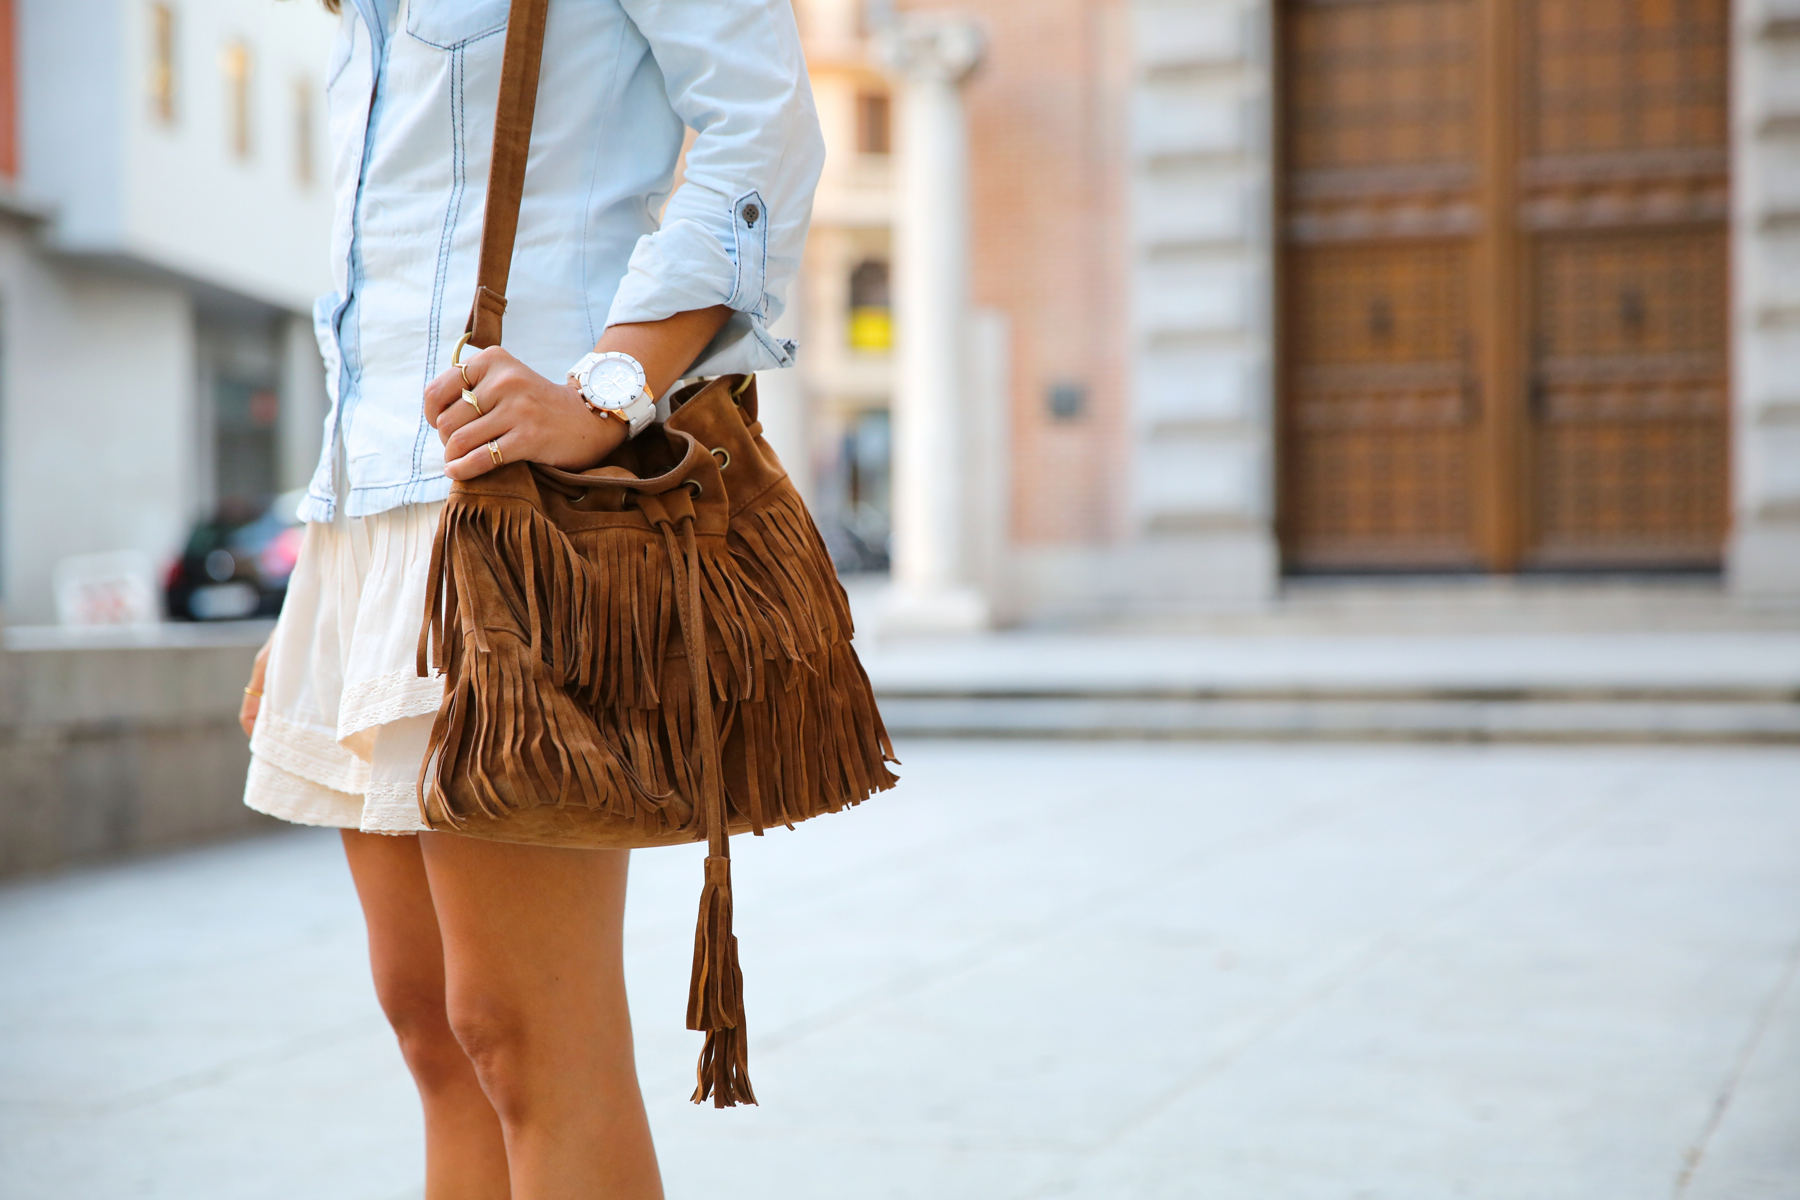 trendy_taste-look-outfit-street_style-denim-blog-blogger-fashion_spain-moda_españa-botines_camperos-it_shoes-cowboy_booties-skirt-falda-bolso_flecos-fringes_bag-camisa_vaquera-denim_shirt-4